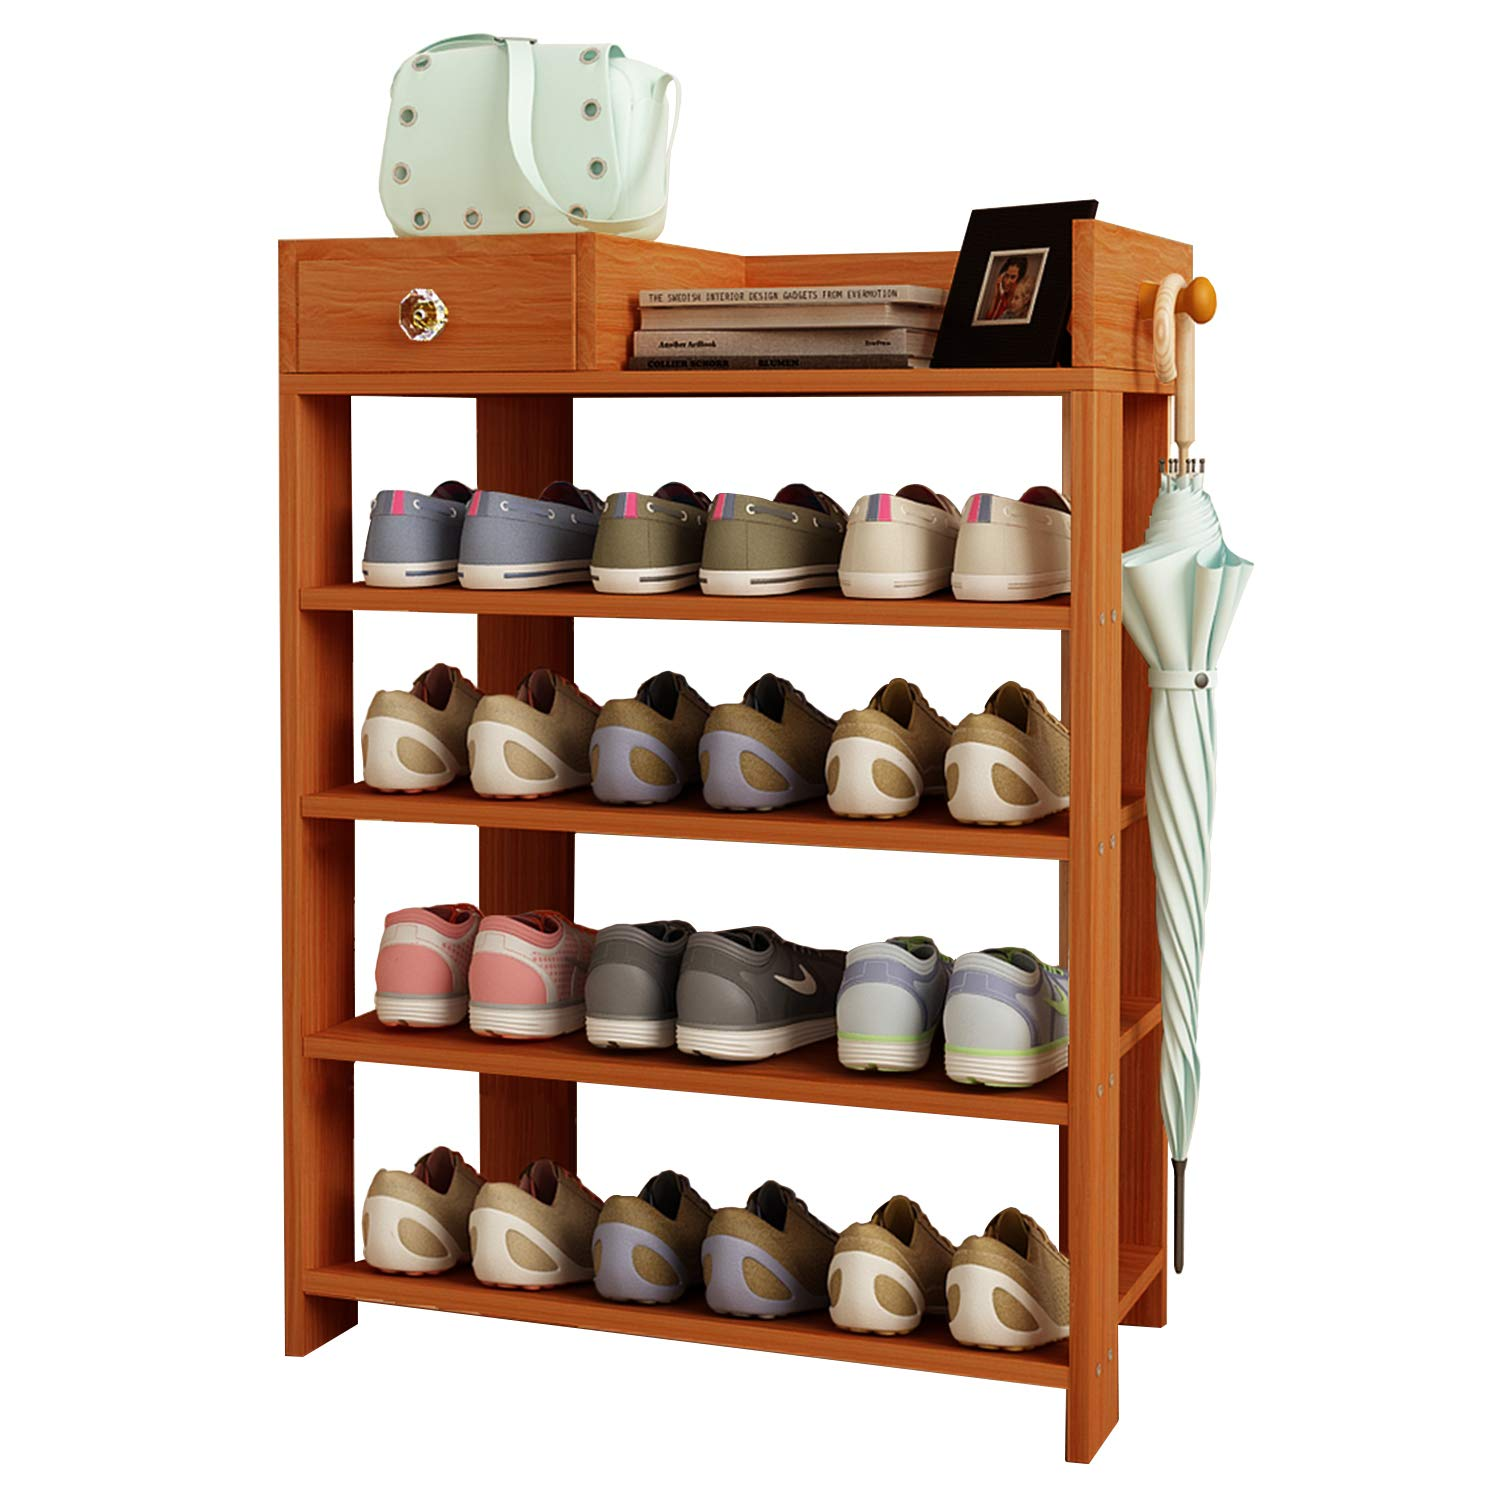 Jerry & Maggie - 4 Tier Wood MDF Board Shoe Rack Shelf with One Drawer Clothes Rack Shoe Storage Shelves Free Standing Flat Racks Classic Style - Multi Function Shelf Organizer - Natural Wood Tone